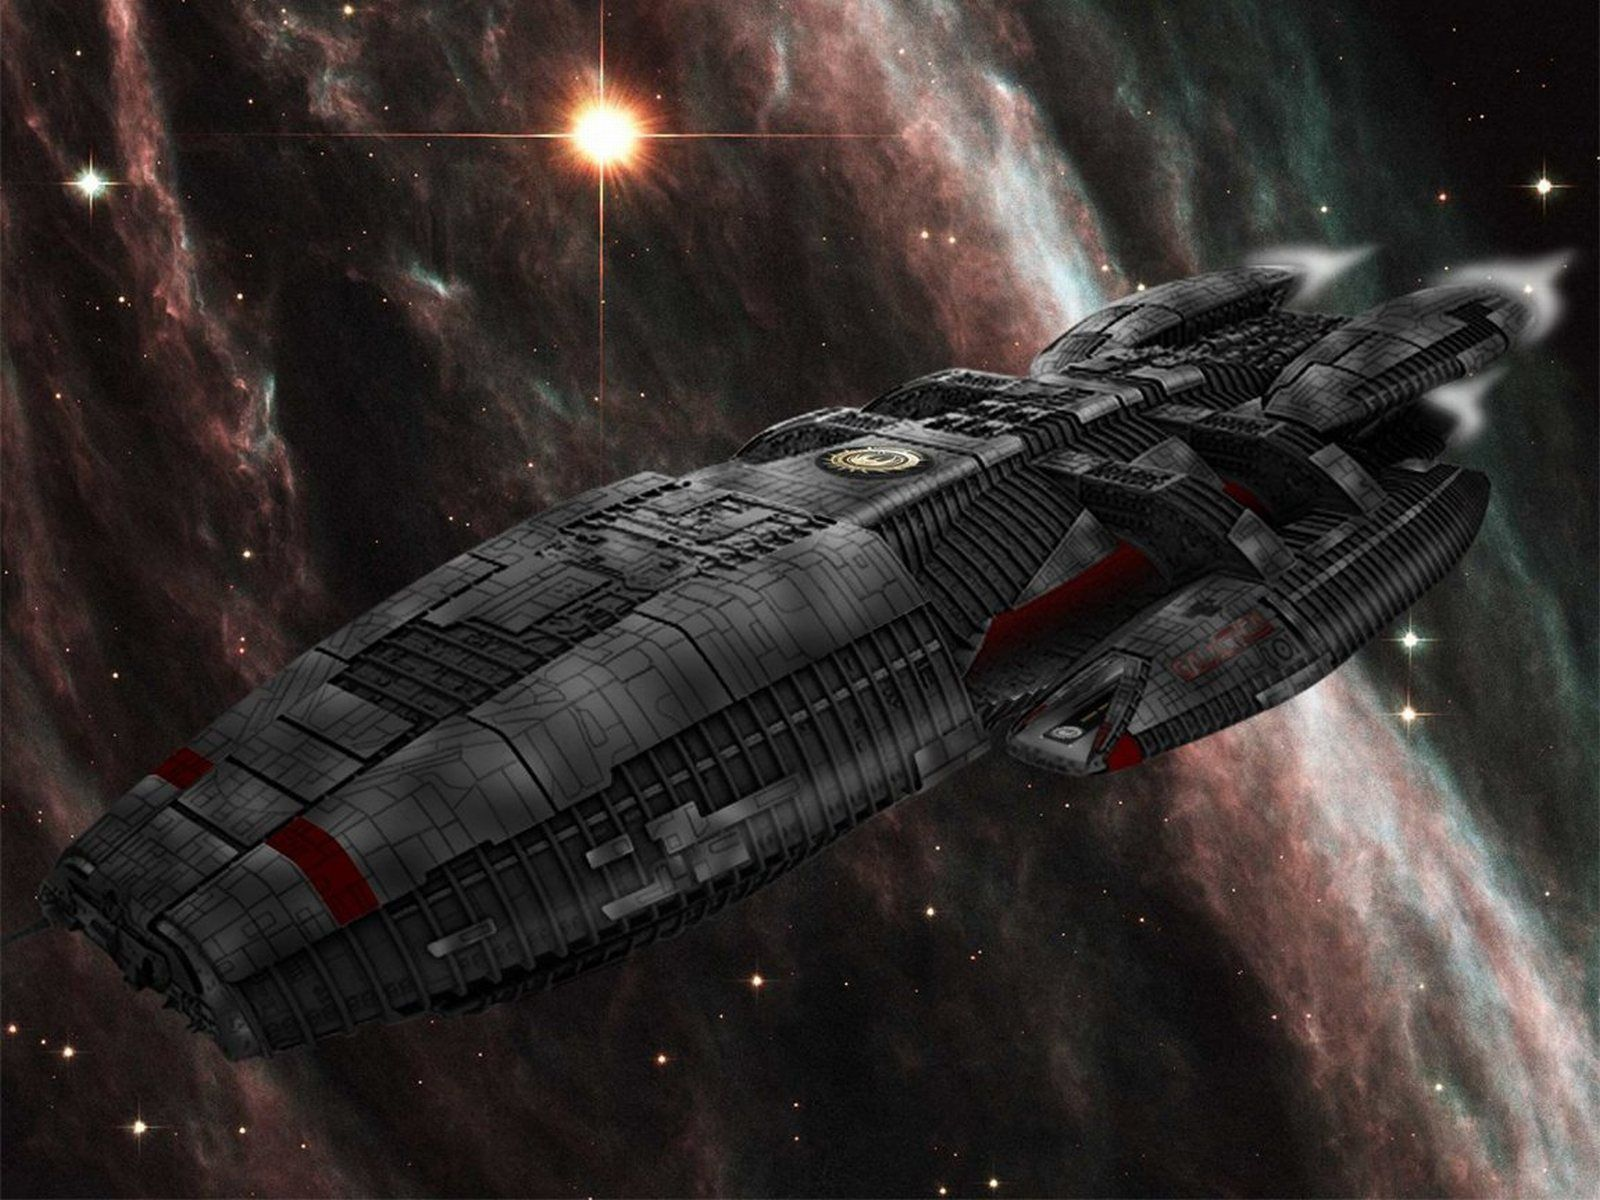 We Are Rockstars In Wallpaper World Find And Bookmark Your Favorite Wallpapers Battlestar Galactica Battlestar Galactica Ship Spaceship Design